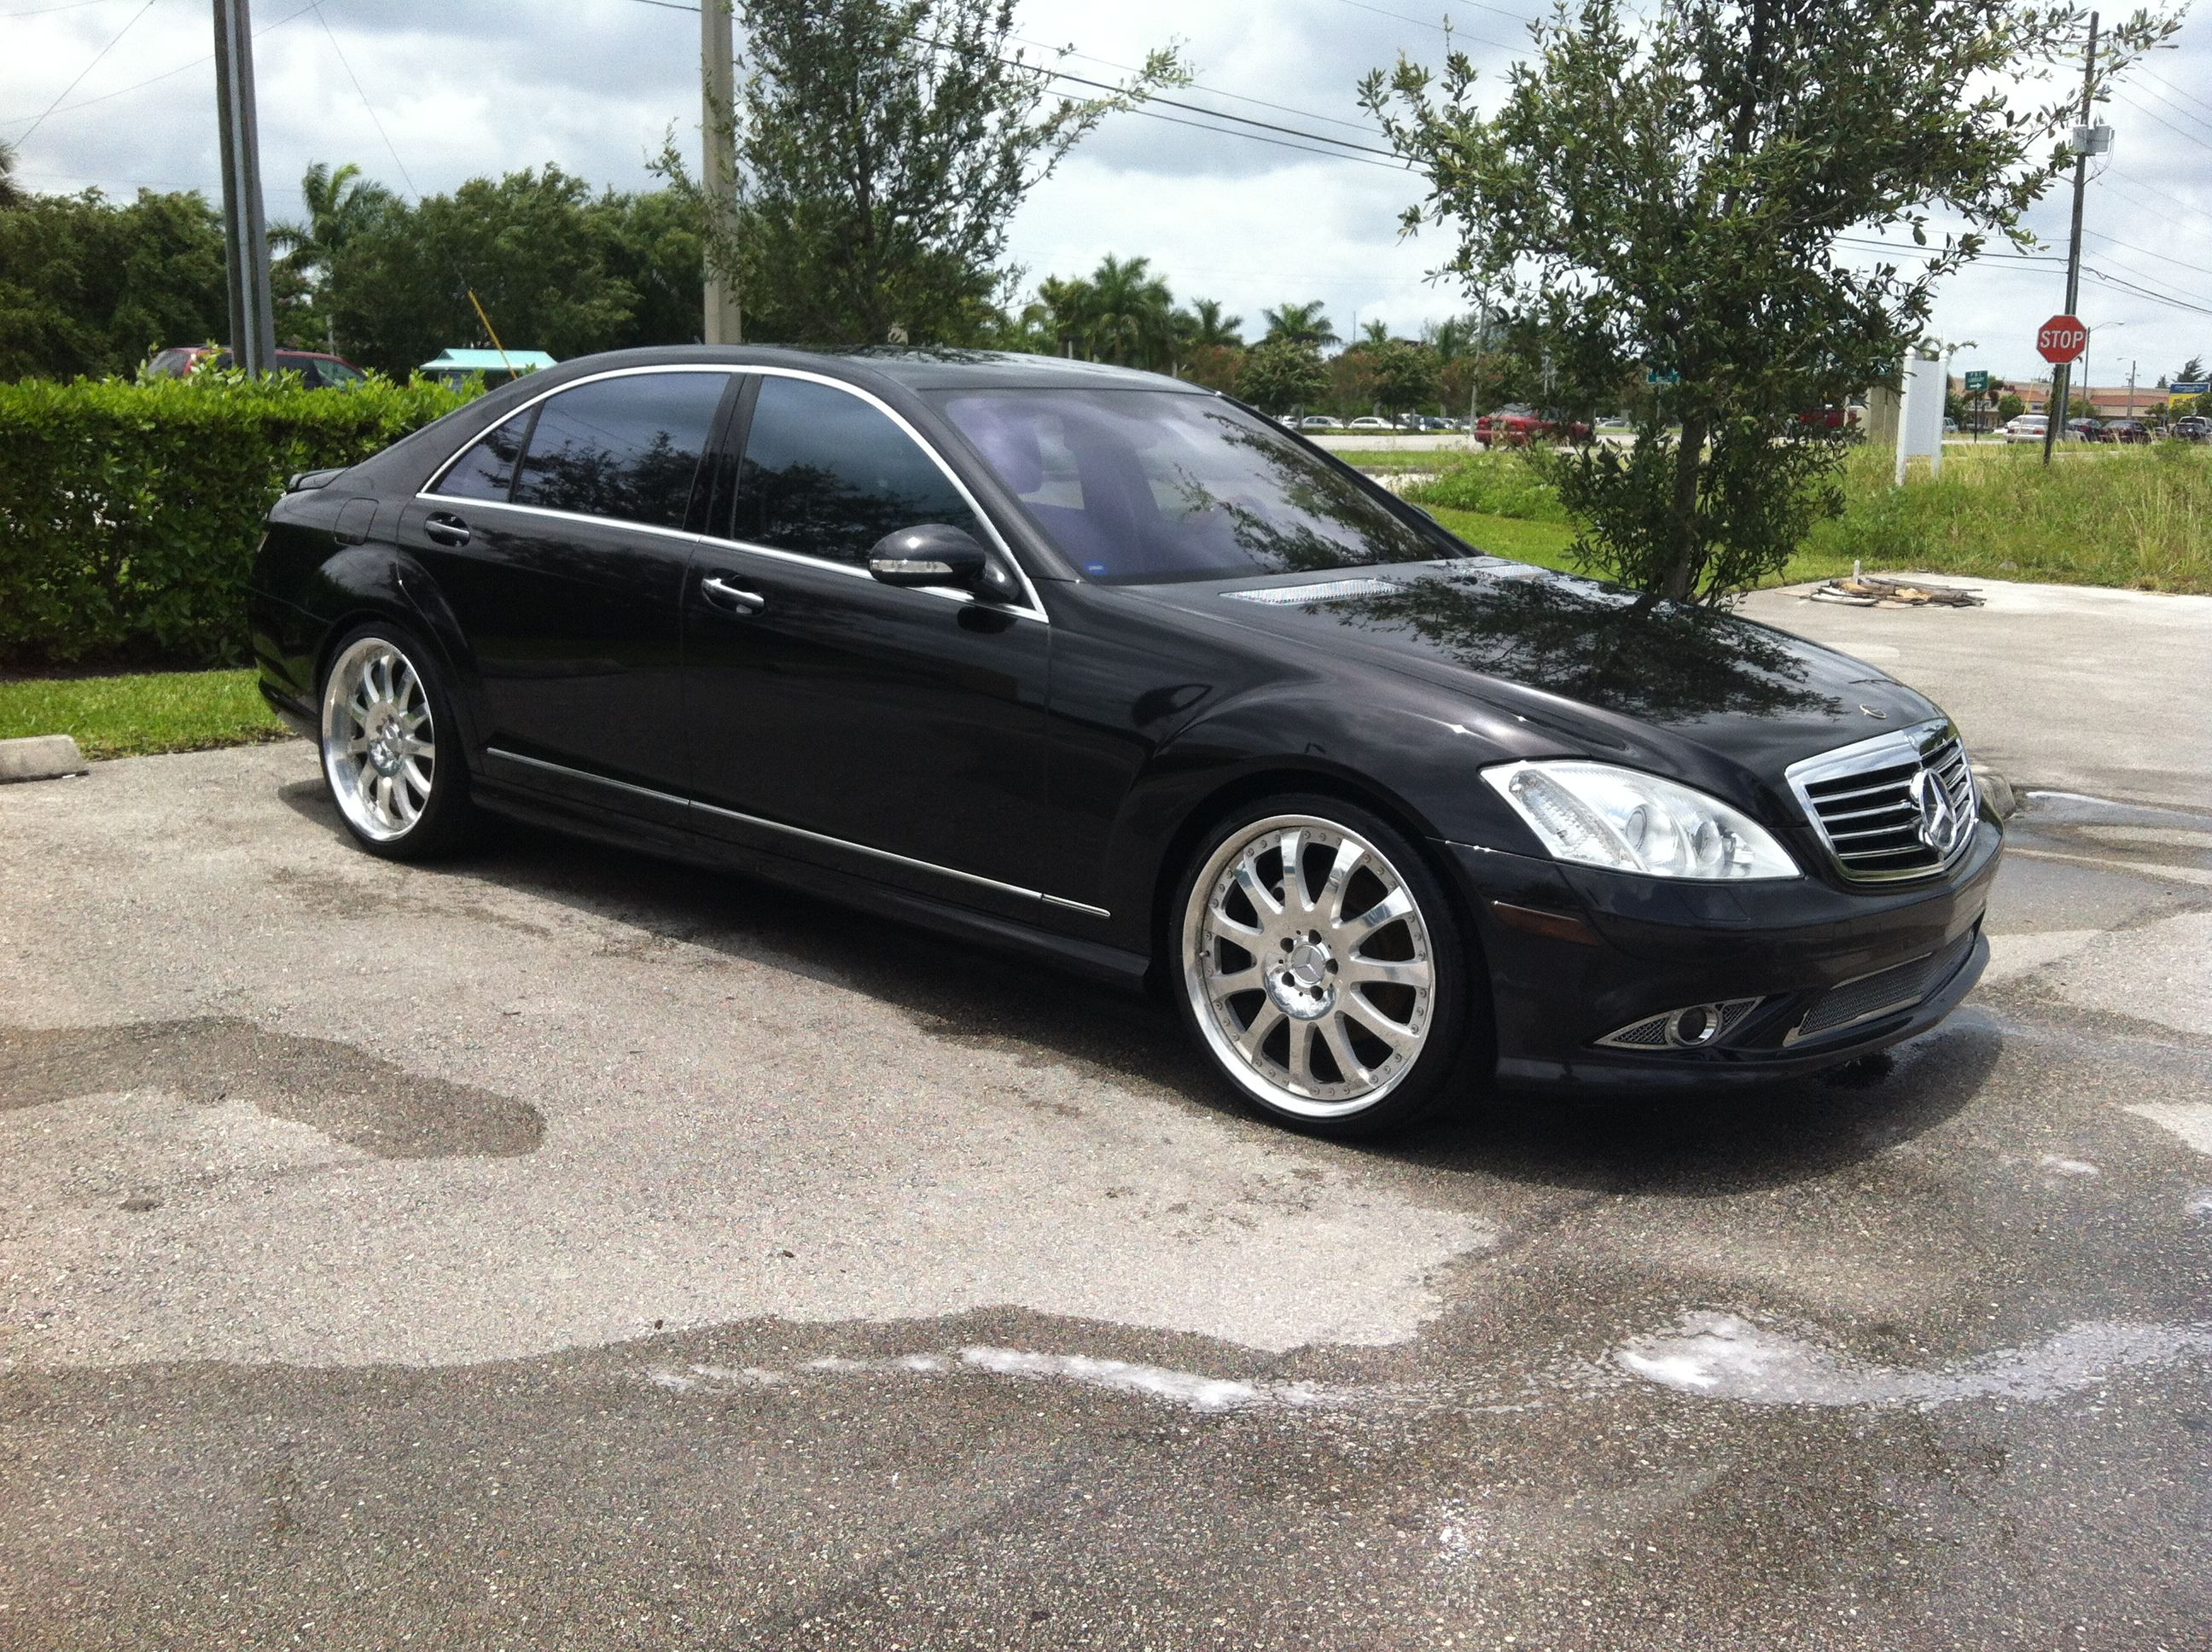 Mercedes benz s550 carlsson finished cars pinterest for Mercedes benz carlsson